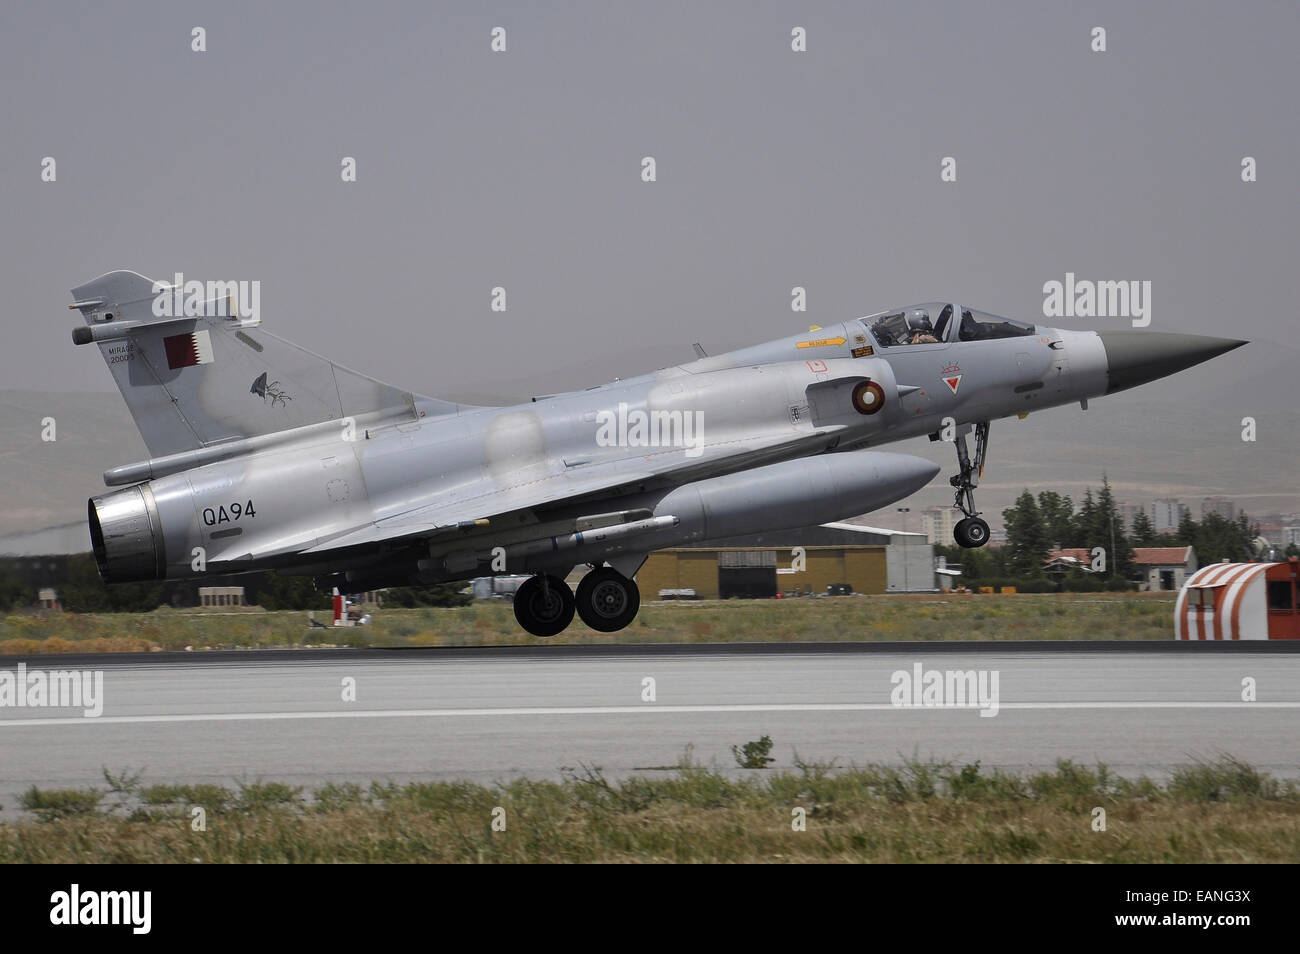 A Dassault Mirage 2000-5EDA of the Qatar Emiri Air Force